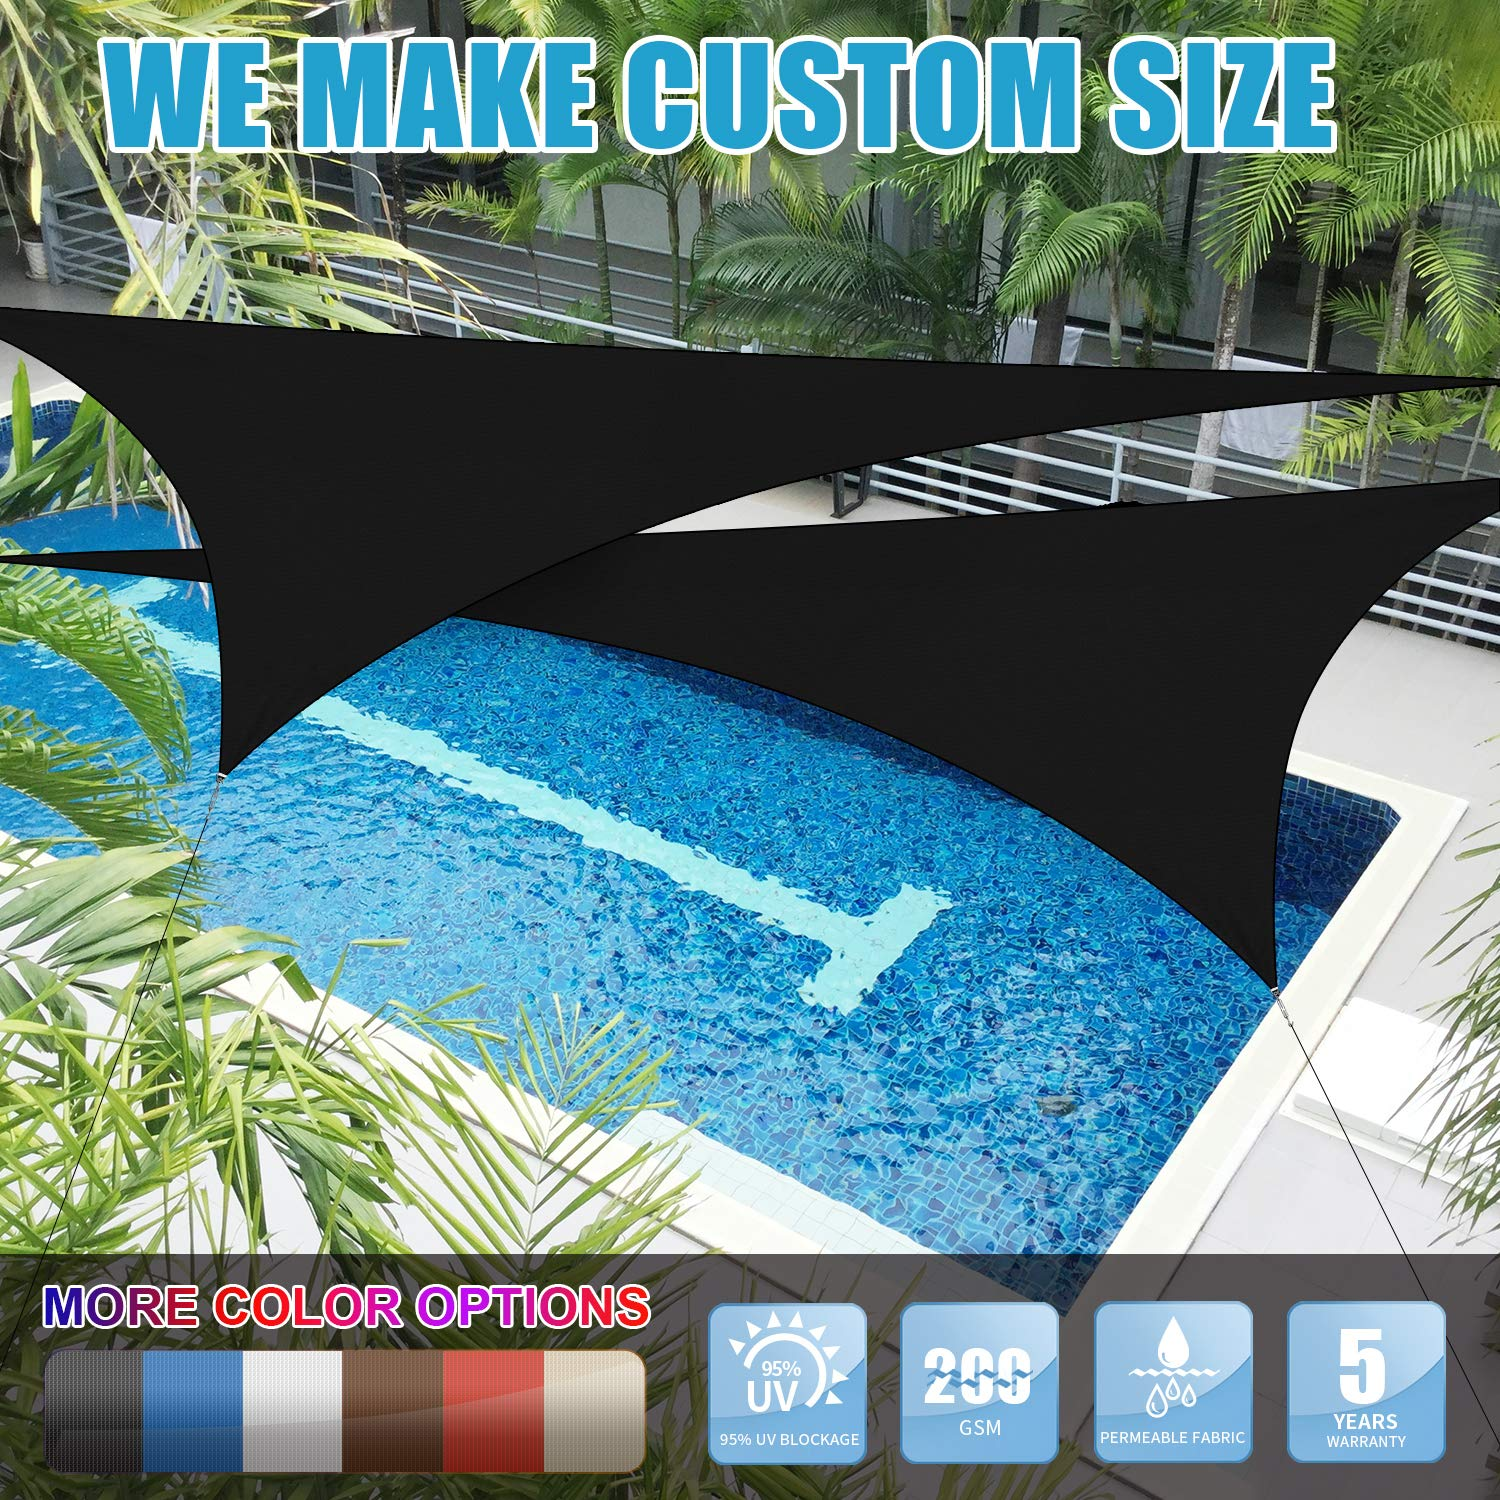 for Patio Yard Pergola Water /& Air Permeable 95/% UV Blockage Commercial and Residential 5 Years Warranty Amgo 12 x 16 Grey Rectangle Sun Shade Sail Canopy Awning Available for Custom Sizes